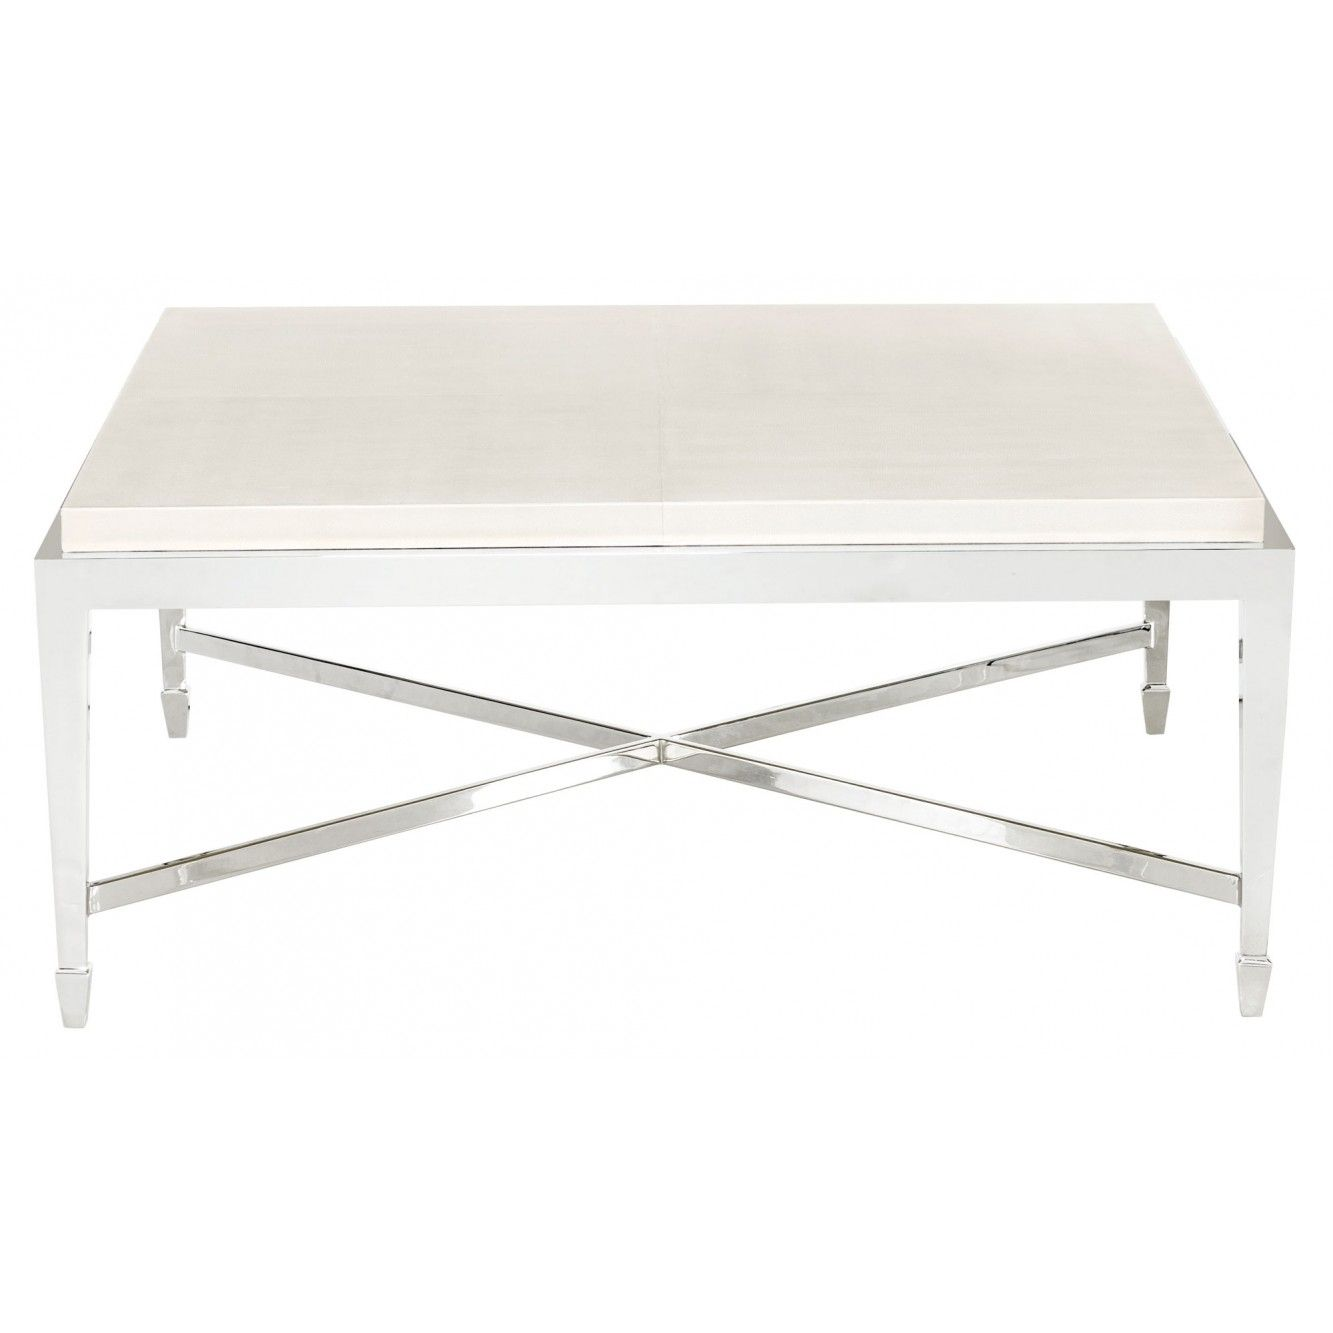 Benn square cocktail table antique white coffee table